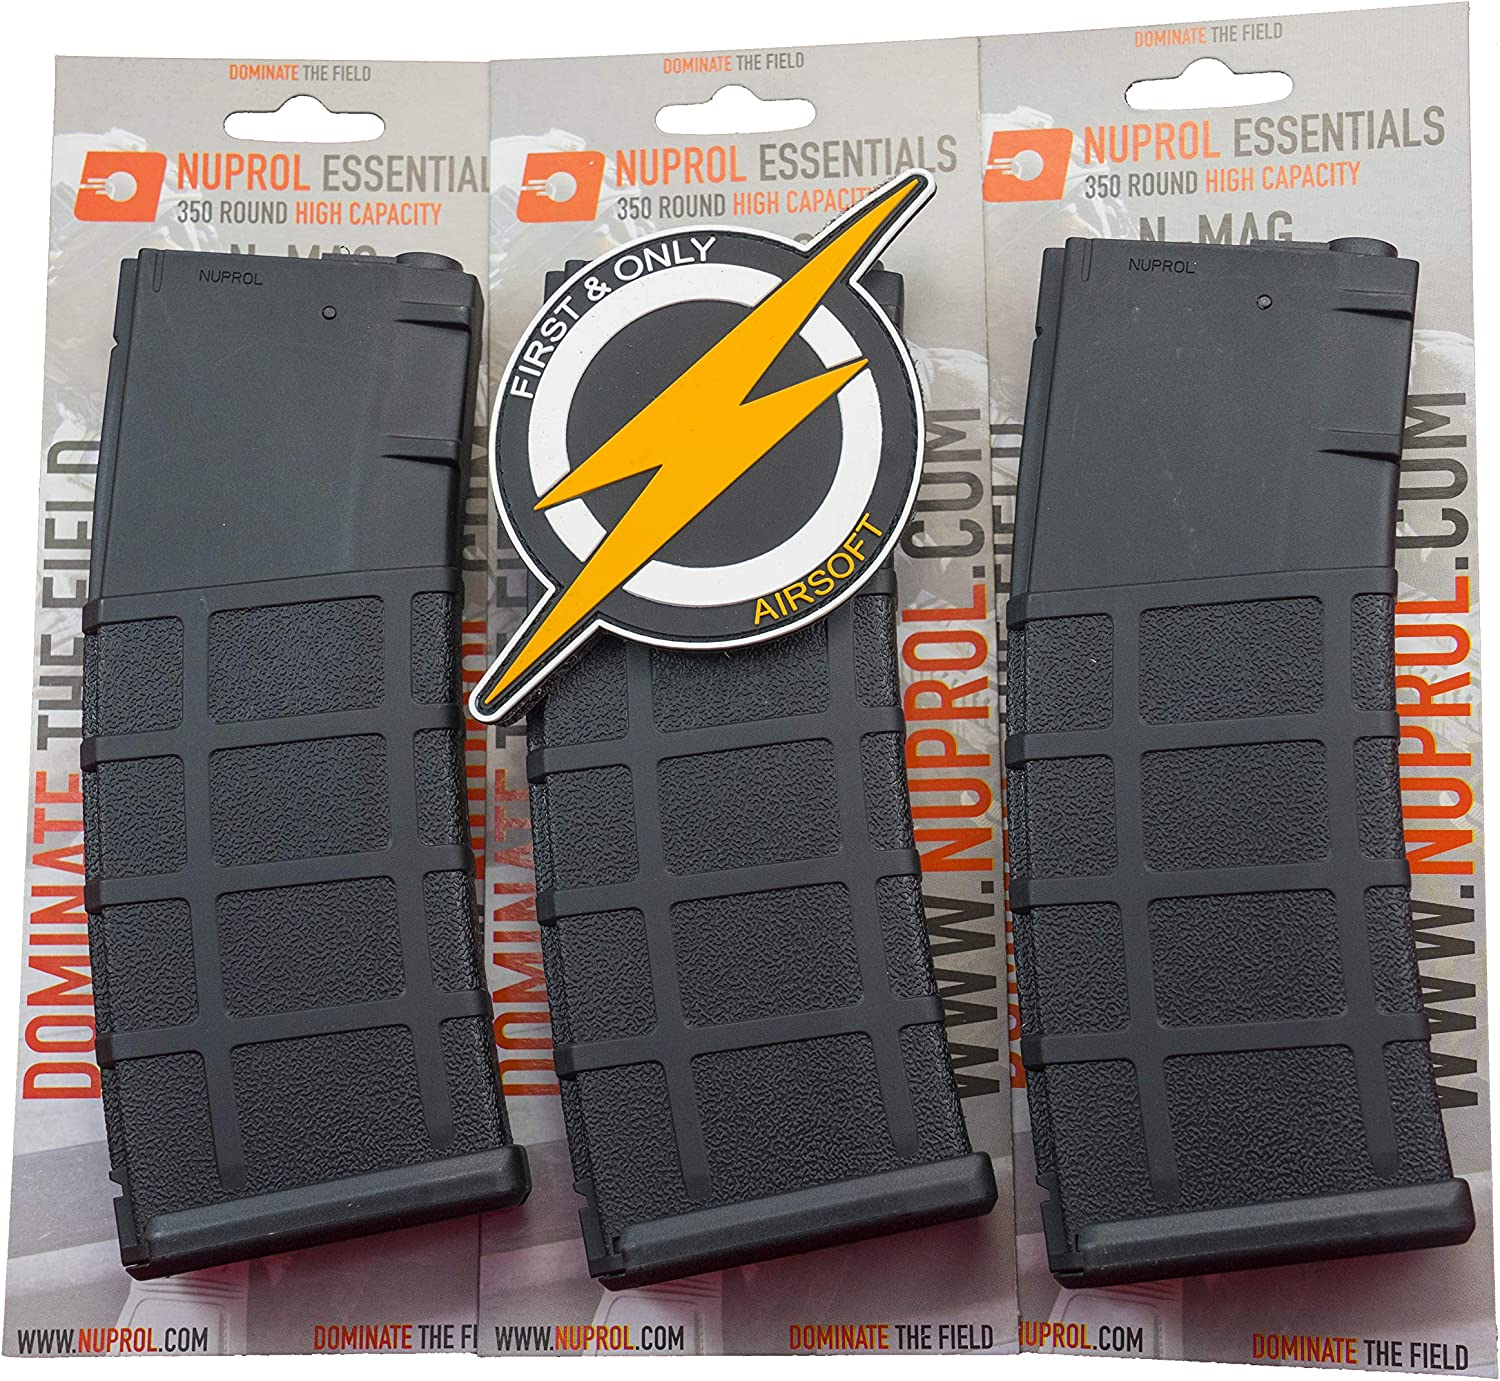 Negro y Parche de First and Only Retail NUPROL Triple Pack de Gran Capacidad Airsoft Magazine 350 Round M4.